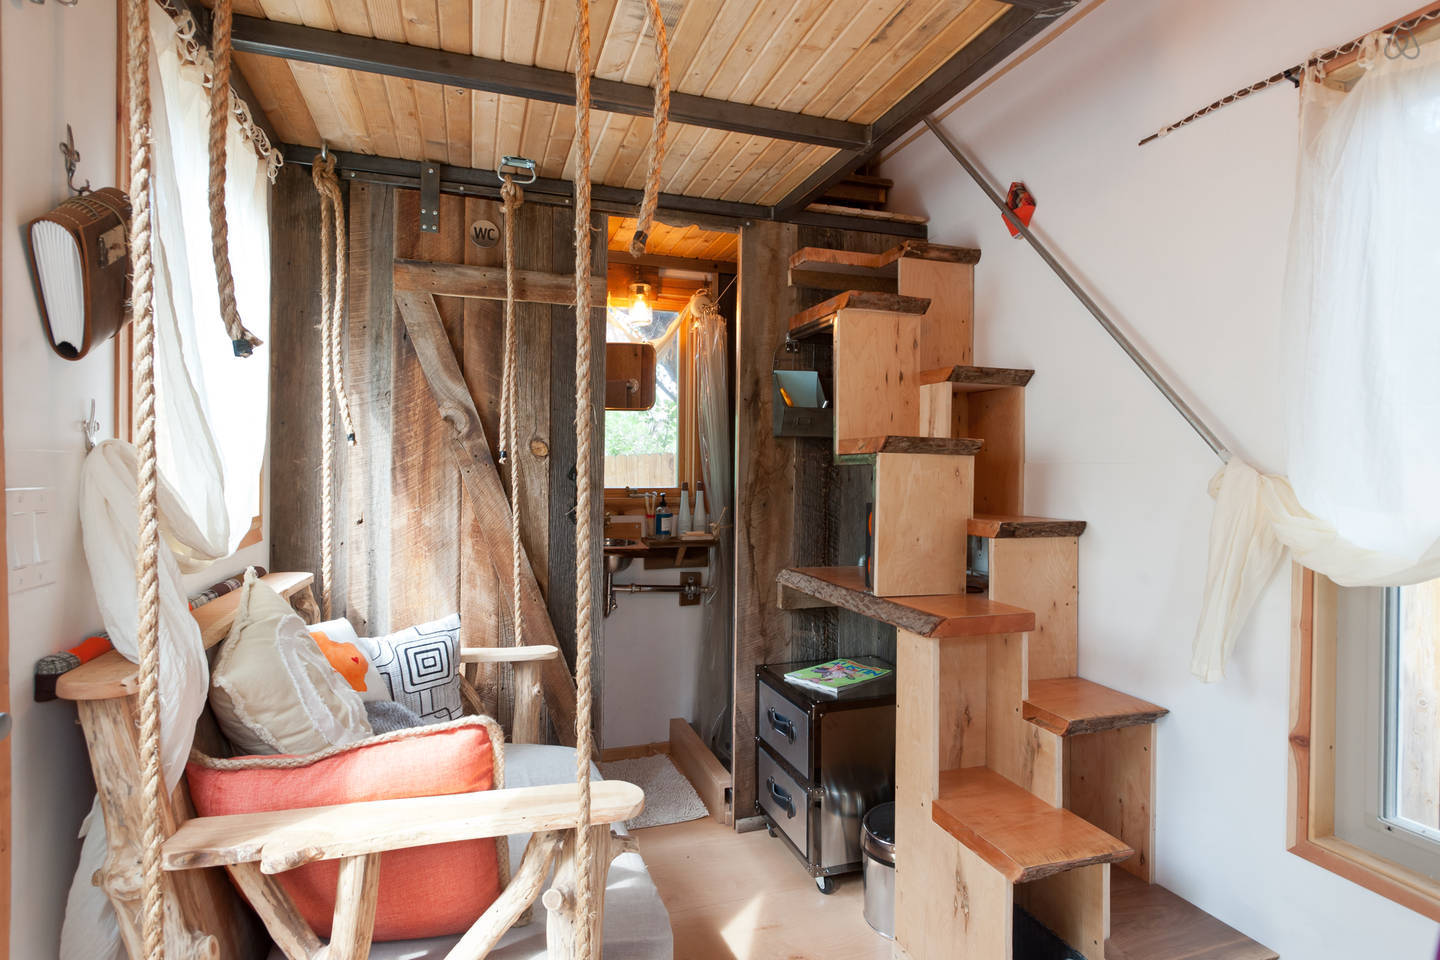 16 tiny houses you wish you could live in House interior design for small houses